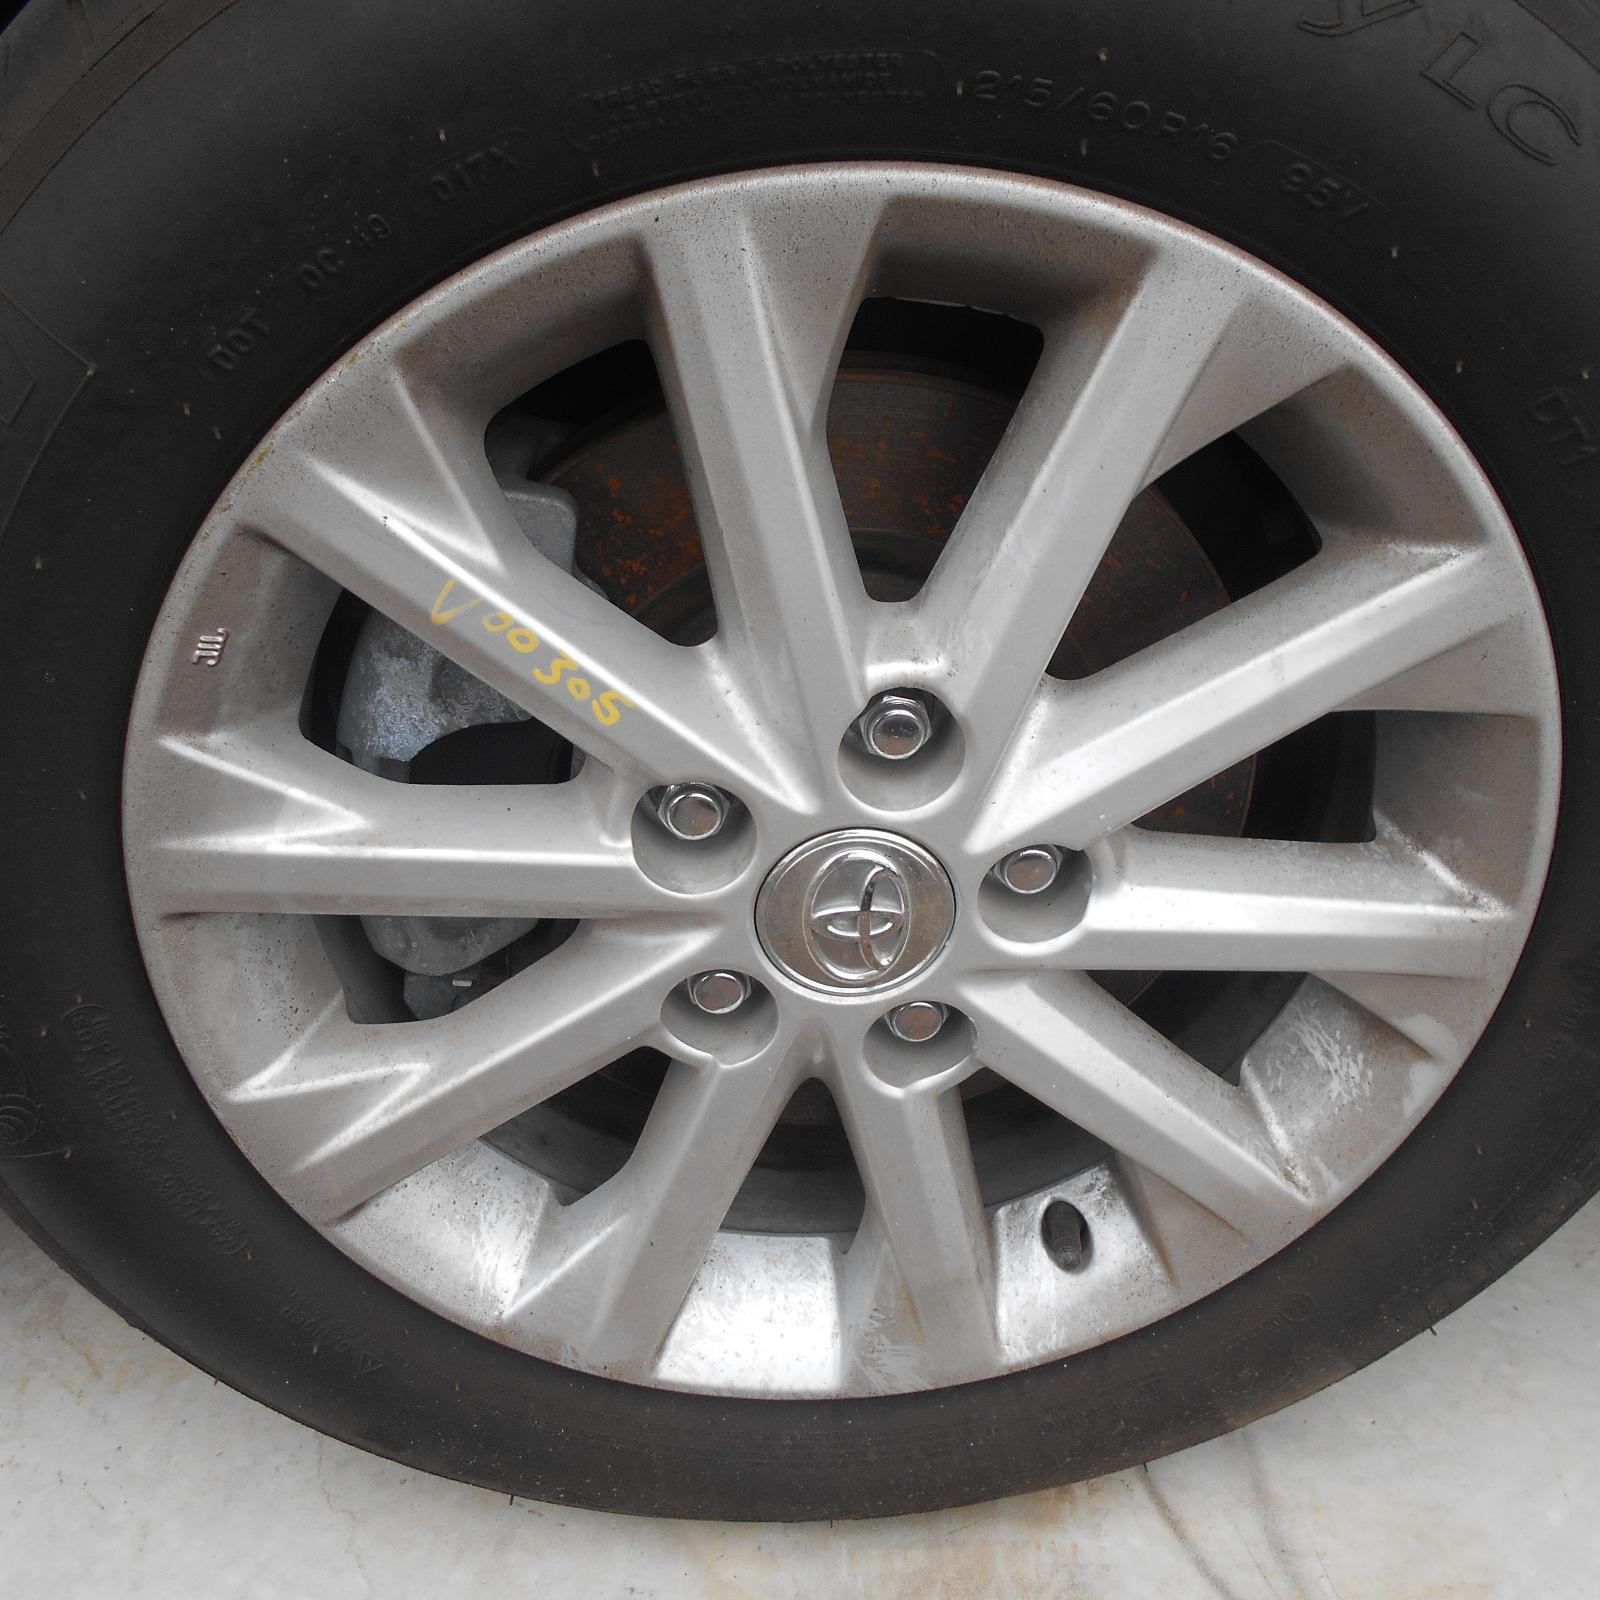 TOYOTA AURION, Wheel Mag, FACTORY, 16X6.5IN, 10 NARROW SPOKES, GSV50R, AT-X, 04/12-08/17